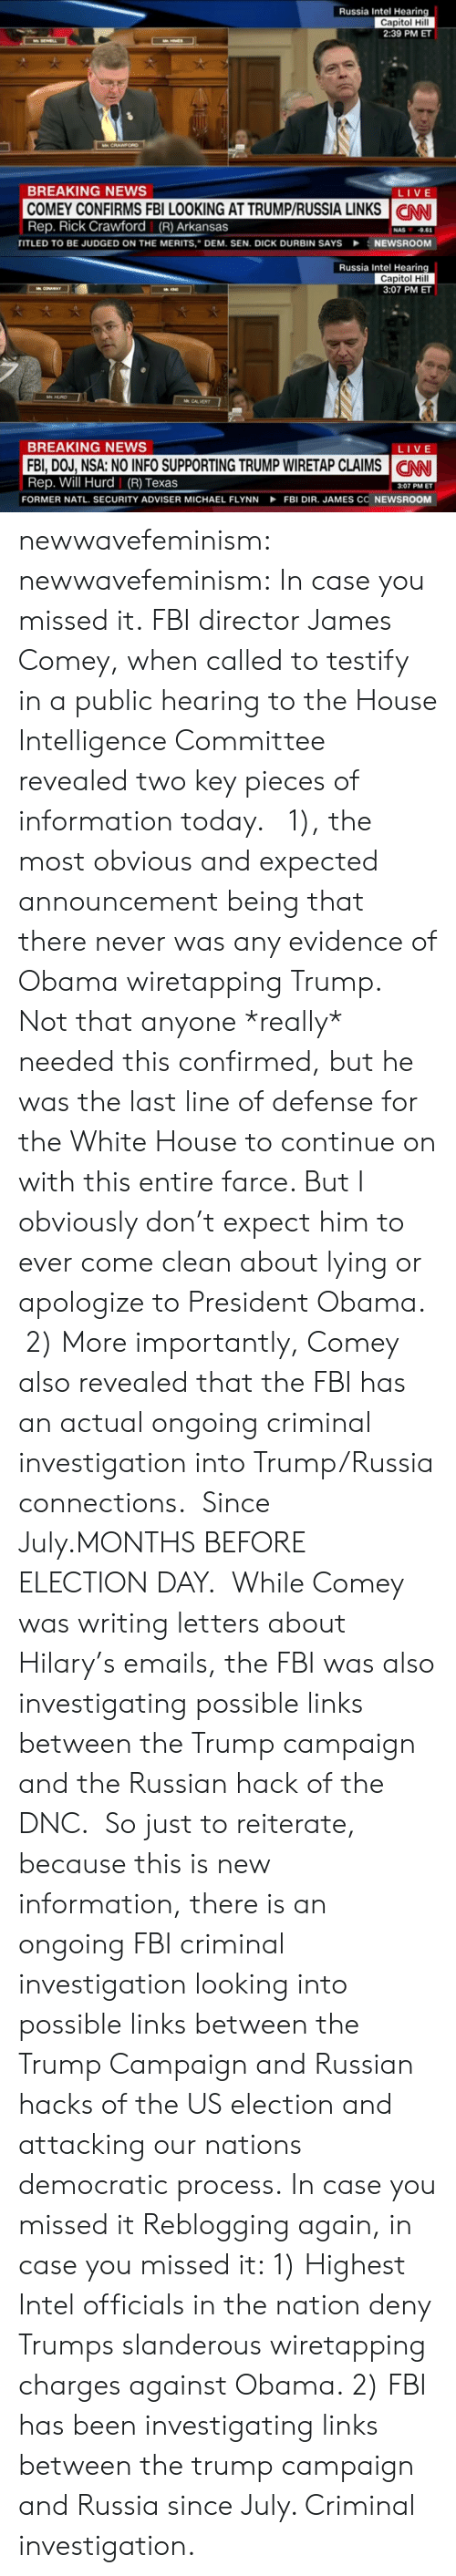 """Fbi, Nas, and News: Russia Intel Hearing  Capitol Hill  2:39 PM ET  BREAKING NEWS  COMEY CONFIRMS FBI LOOKING AT TRUMP/RUSSIA LINKS CN  Rep. Rick Crawford (R) Arkansas  LIVE  NAS 9.61  riTLED TO BE JUDGED ON THE MERITS,"""" DEM. SEN. DICK DURBIN SAYS  NEWSROOM   Russia Intel Hearing  Capitol Hill  3:07 PM ET  嫵  MAY  CAL VERT  BREAKING NEWS  FBI,DOJ, NSA: NO INFO SUPPORTING TRUMP WIRETAP CLAIMS  Rep. Will Hurd 